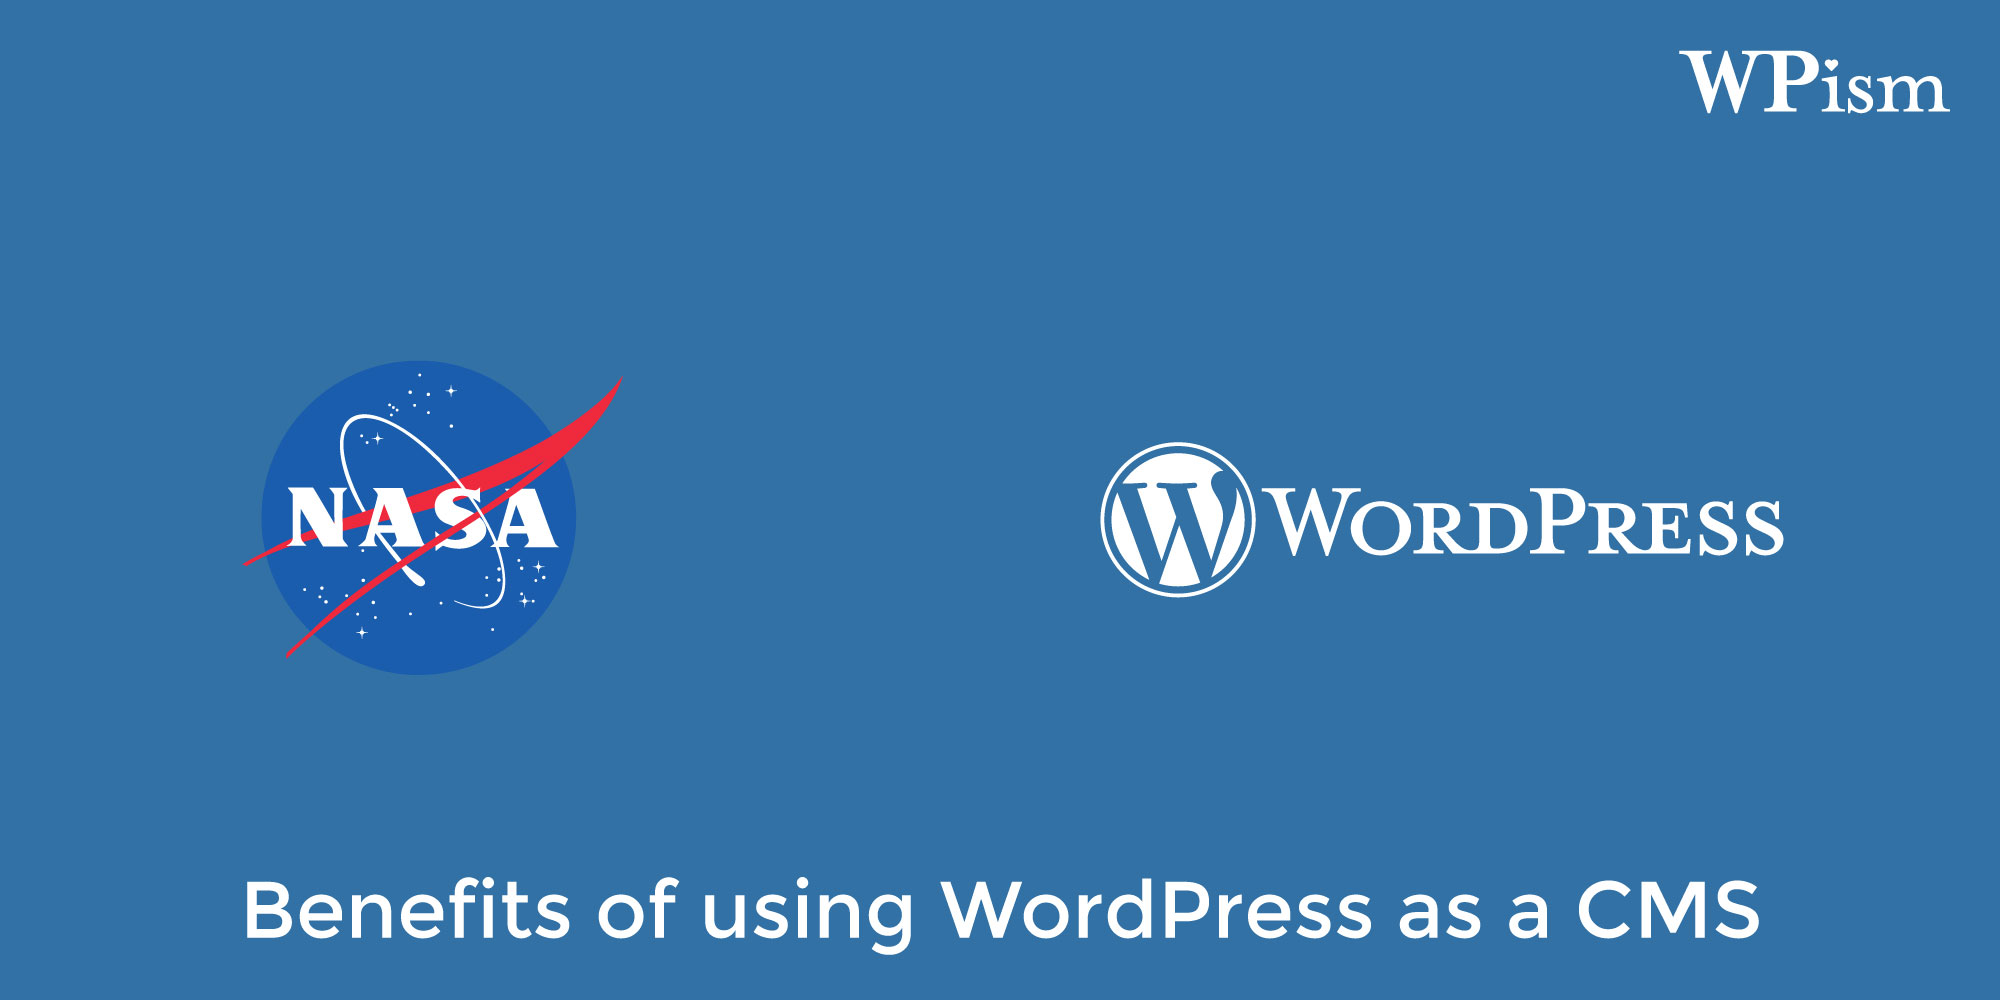 A NASAwebsite publishes about benefits of using WordPress as a CMS